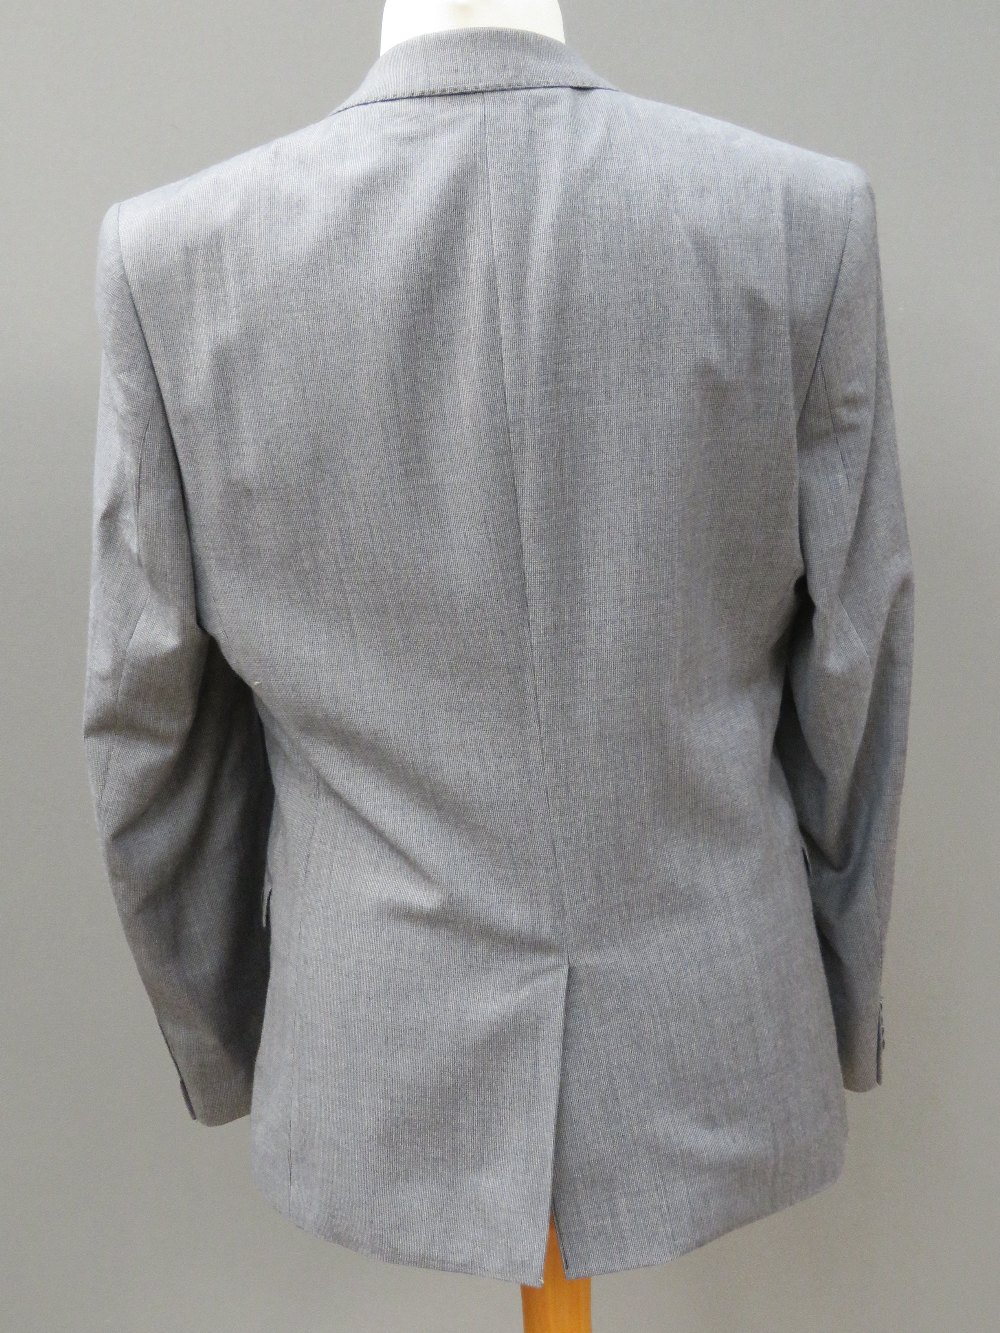 "Ben Sherman men's suit jacket, 40"" Regul - Image 2 of 4"